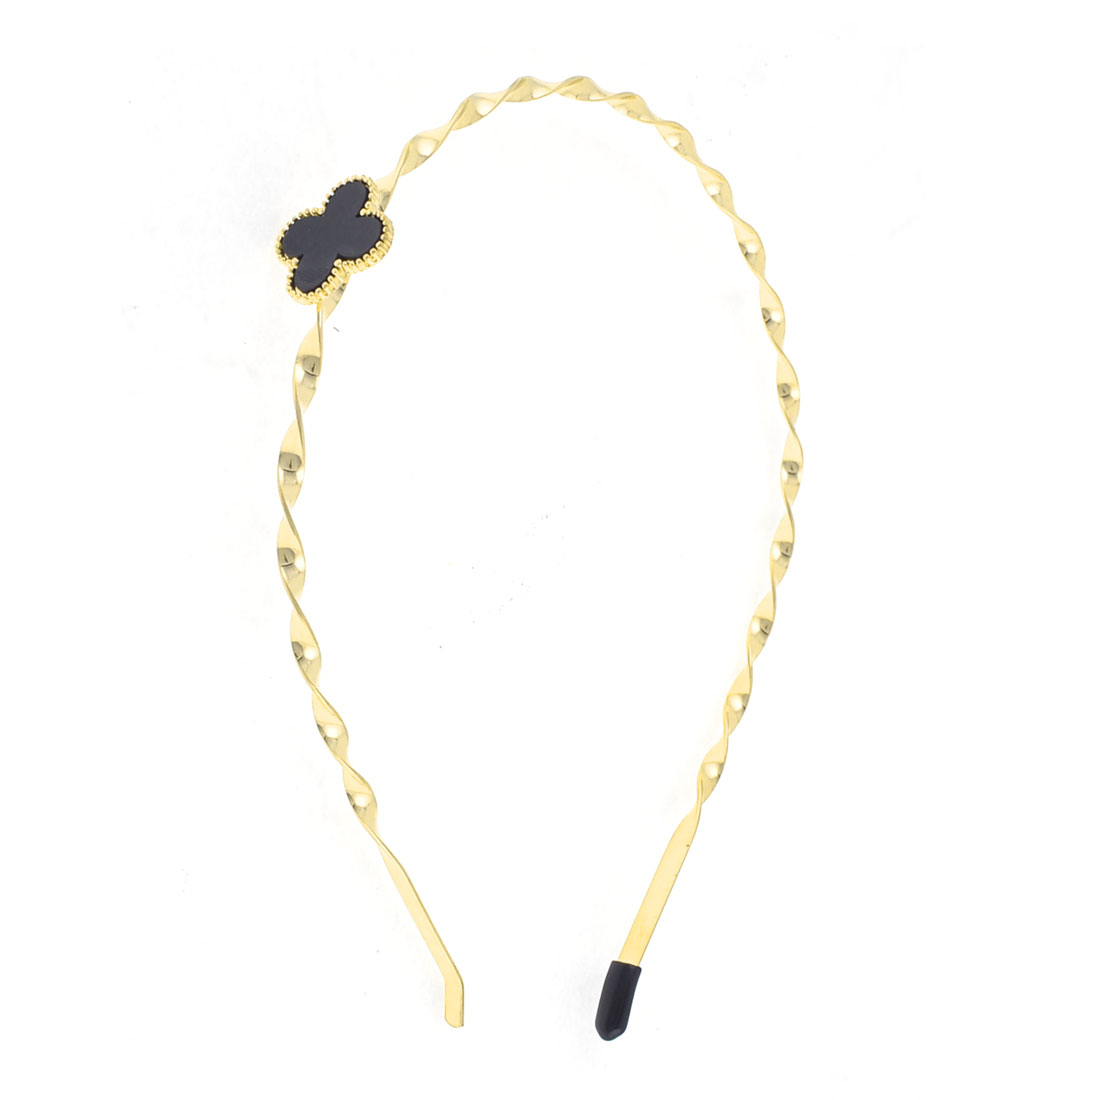 Gold Tone Black Four Leaf Clover Detail Metal Hairband Headband for Lady